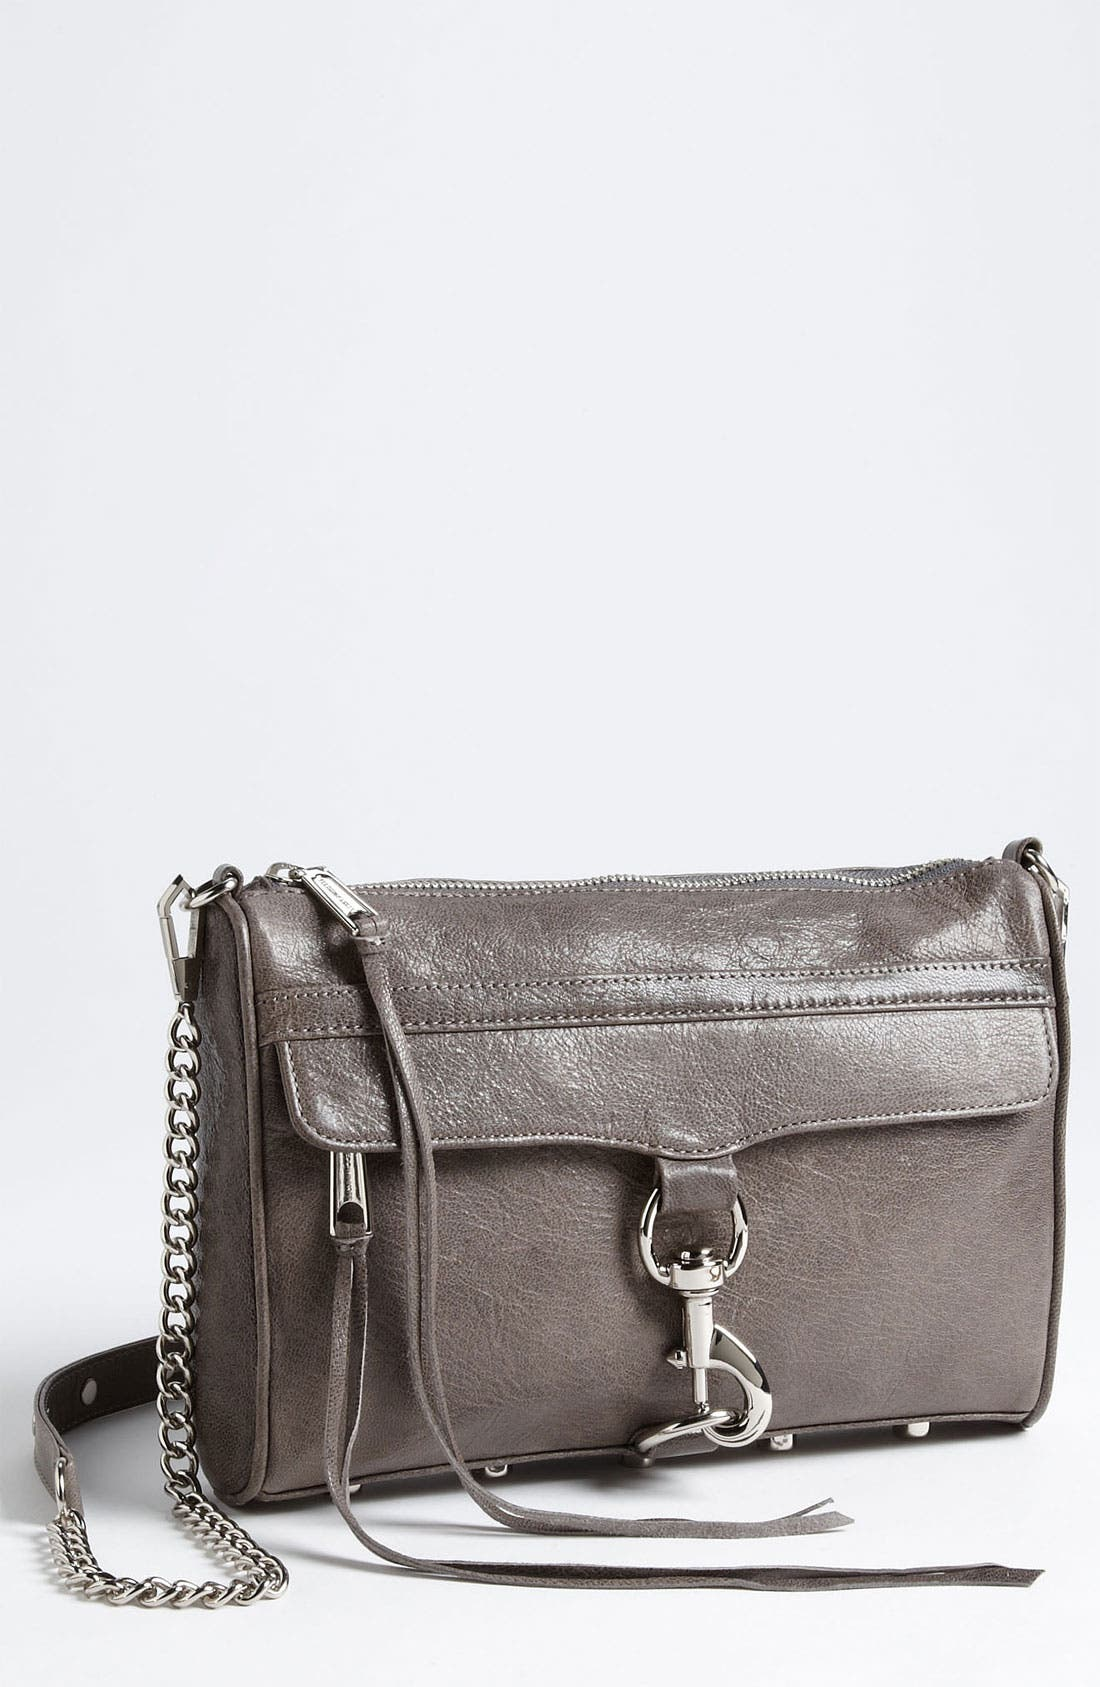 Alternate Image 1 Selected - Rebecca Minkoff 'MAC' Leather Shoulder Bag